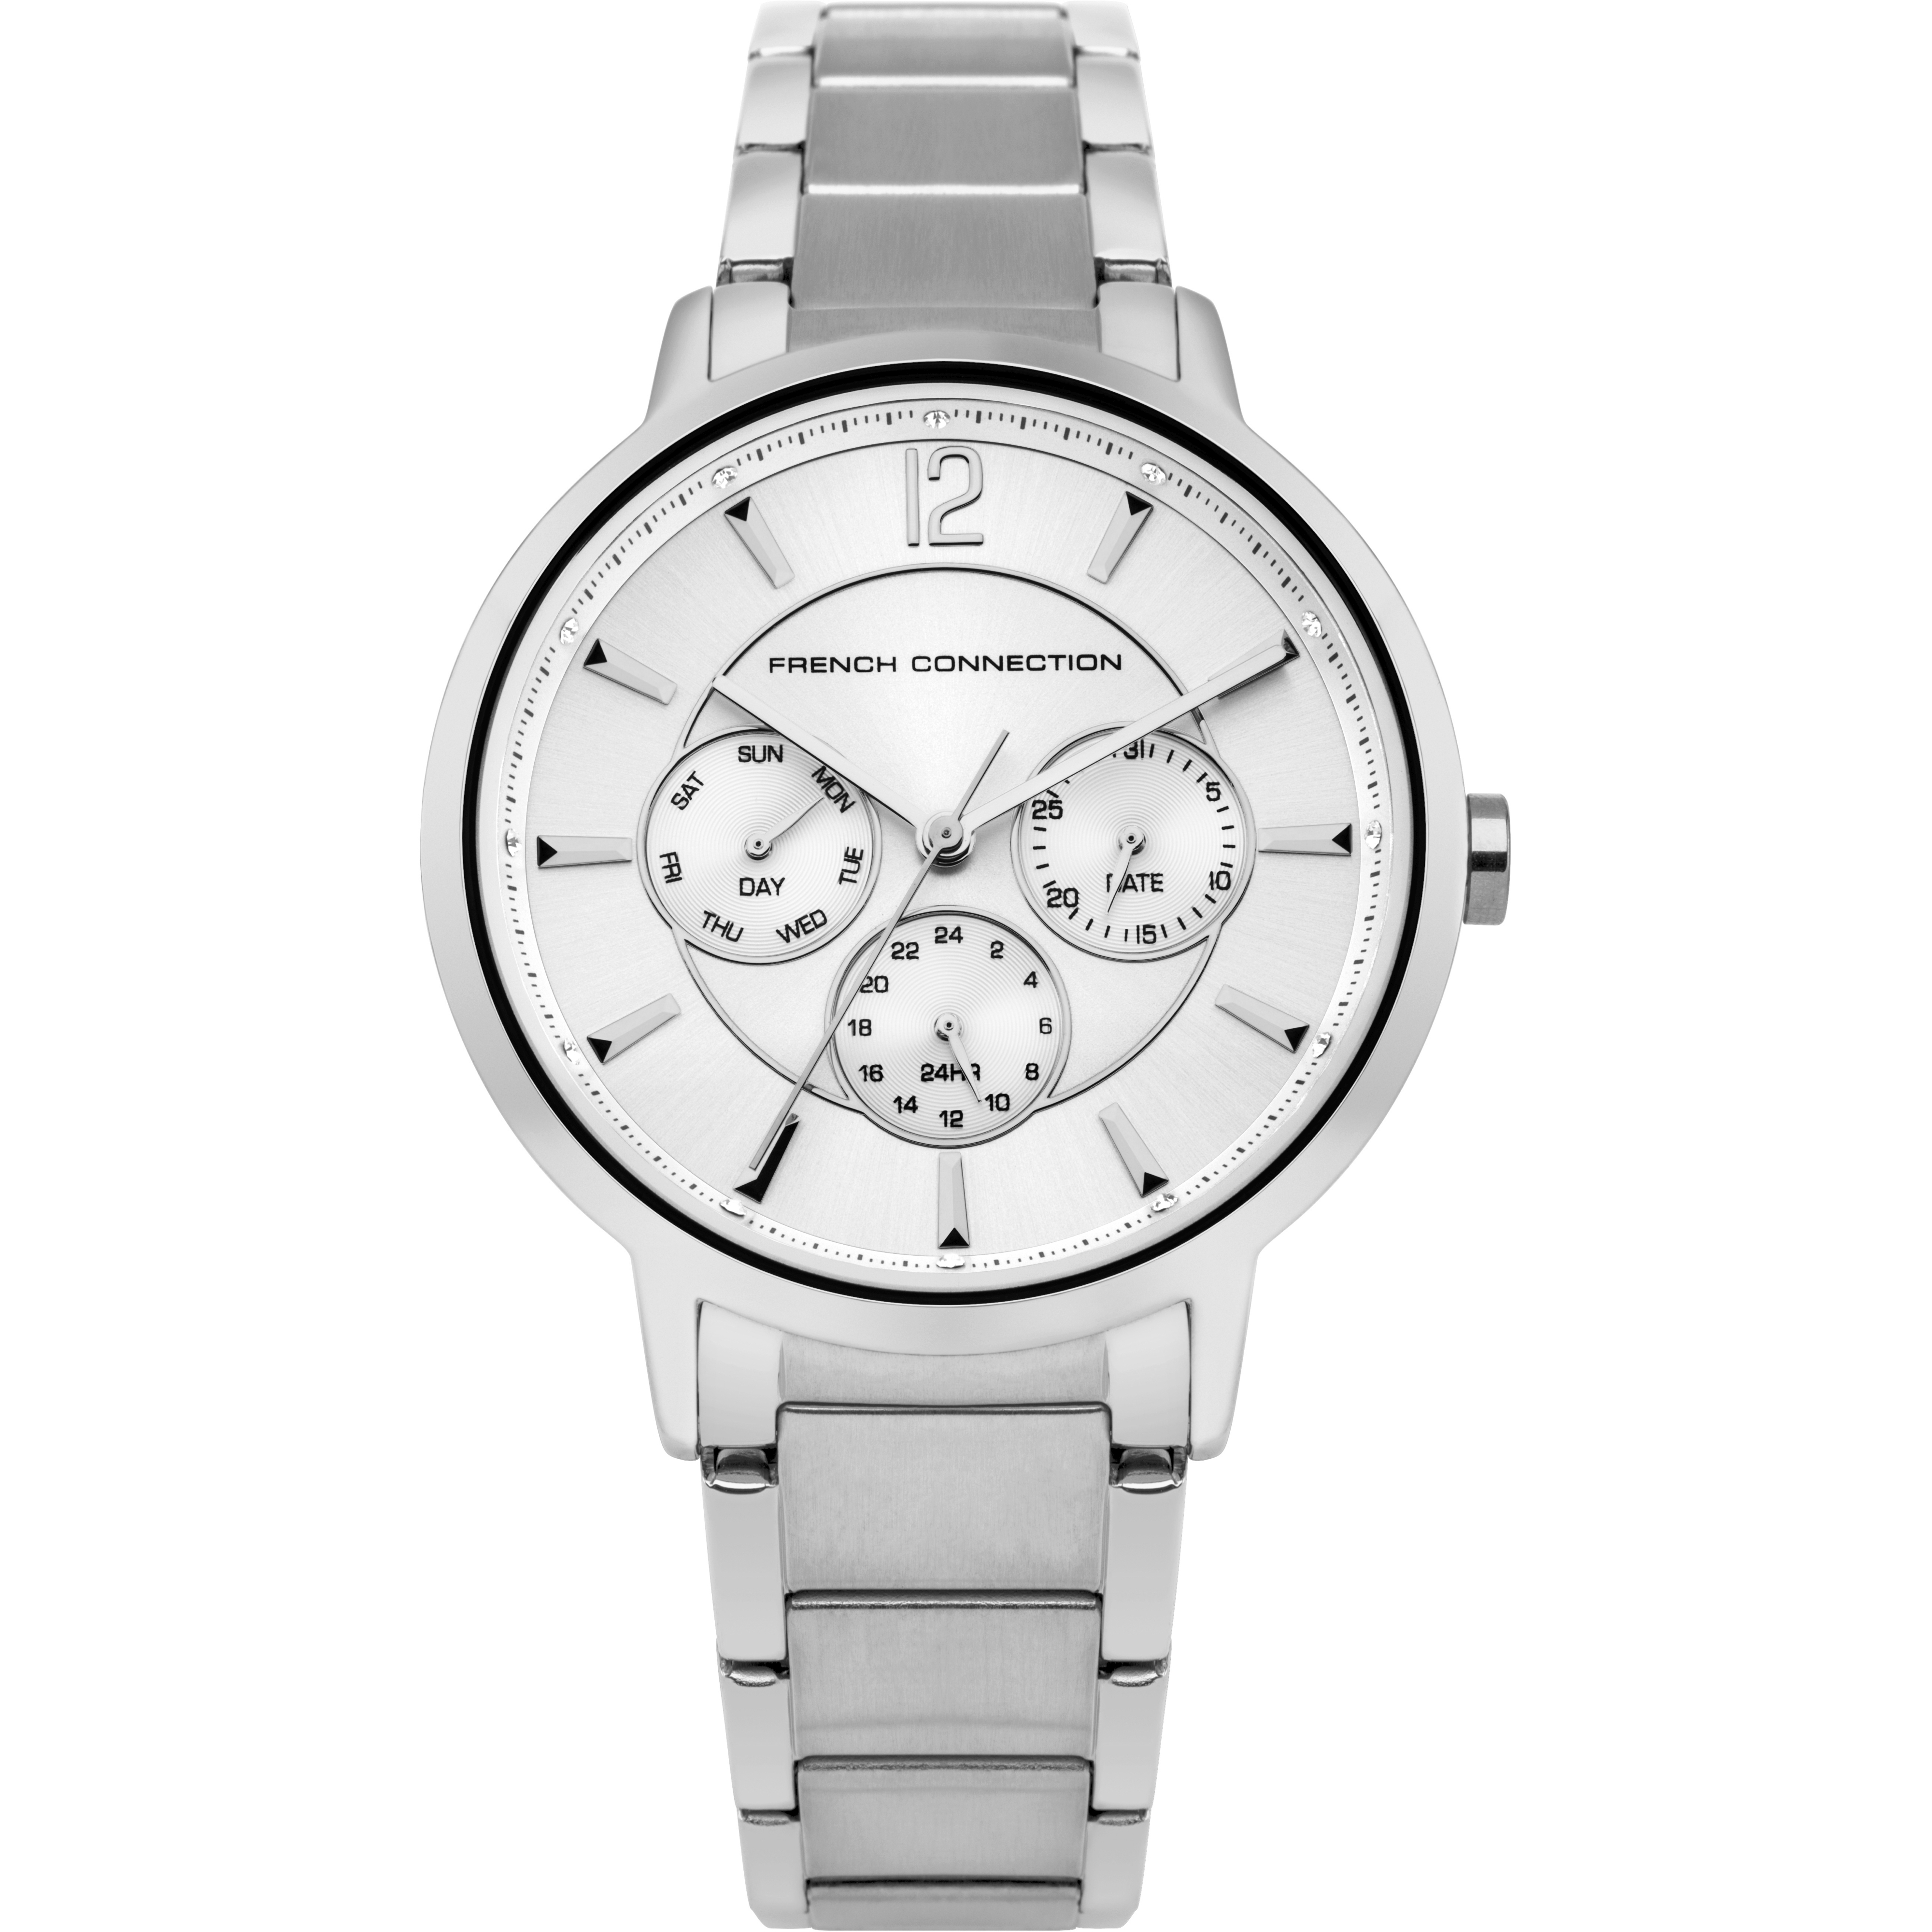 310a4ee5dae Ladies French Connection Watch (FC1300SM)   WatchShop.com™